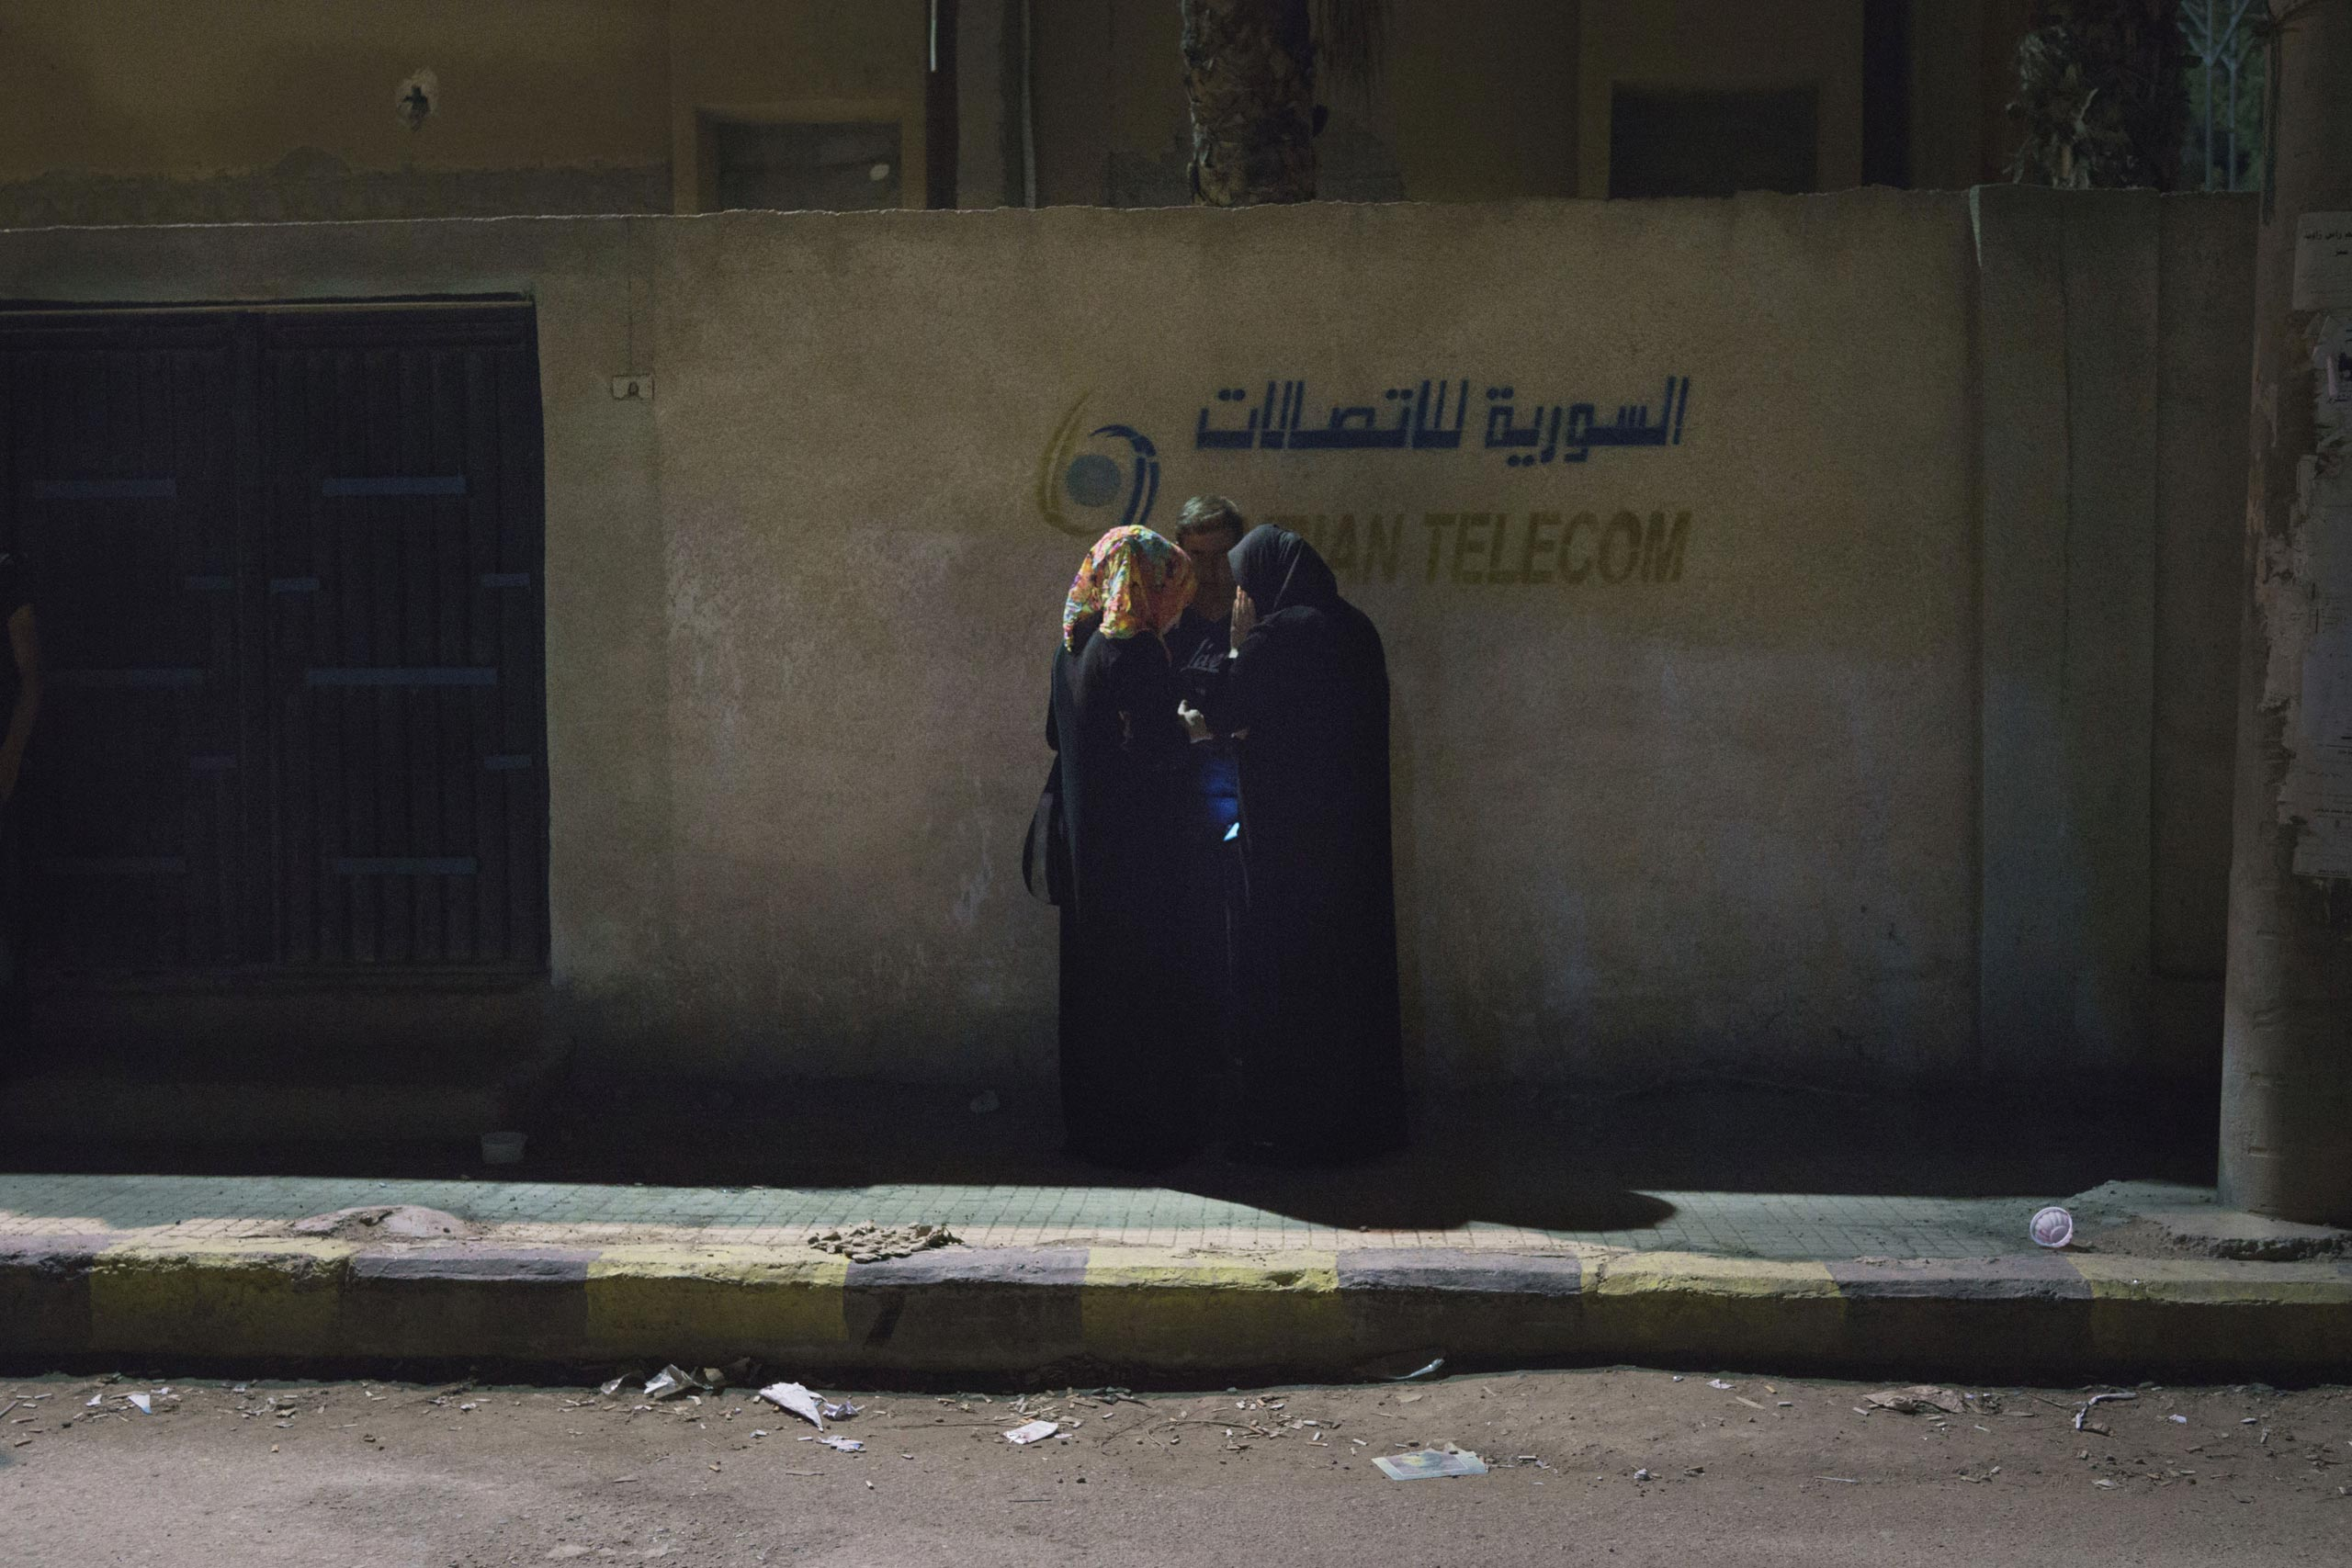 Residents of Deir-ez Zor huddle while trying to get a cell phone signal. Since the ISIS blockade of the city, electricity has been cut, making communication with the outside world difficult. Some cell towers, which are also used to provide internet service, now operate only three days a week, June 4, 2015.